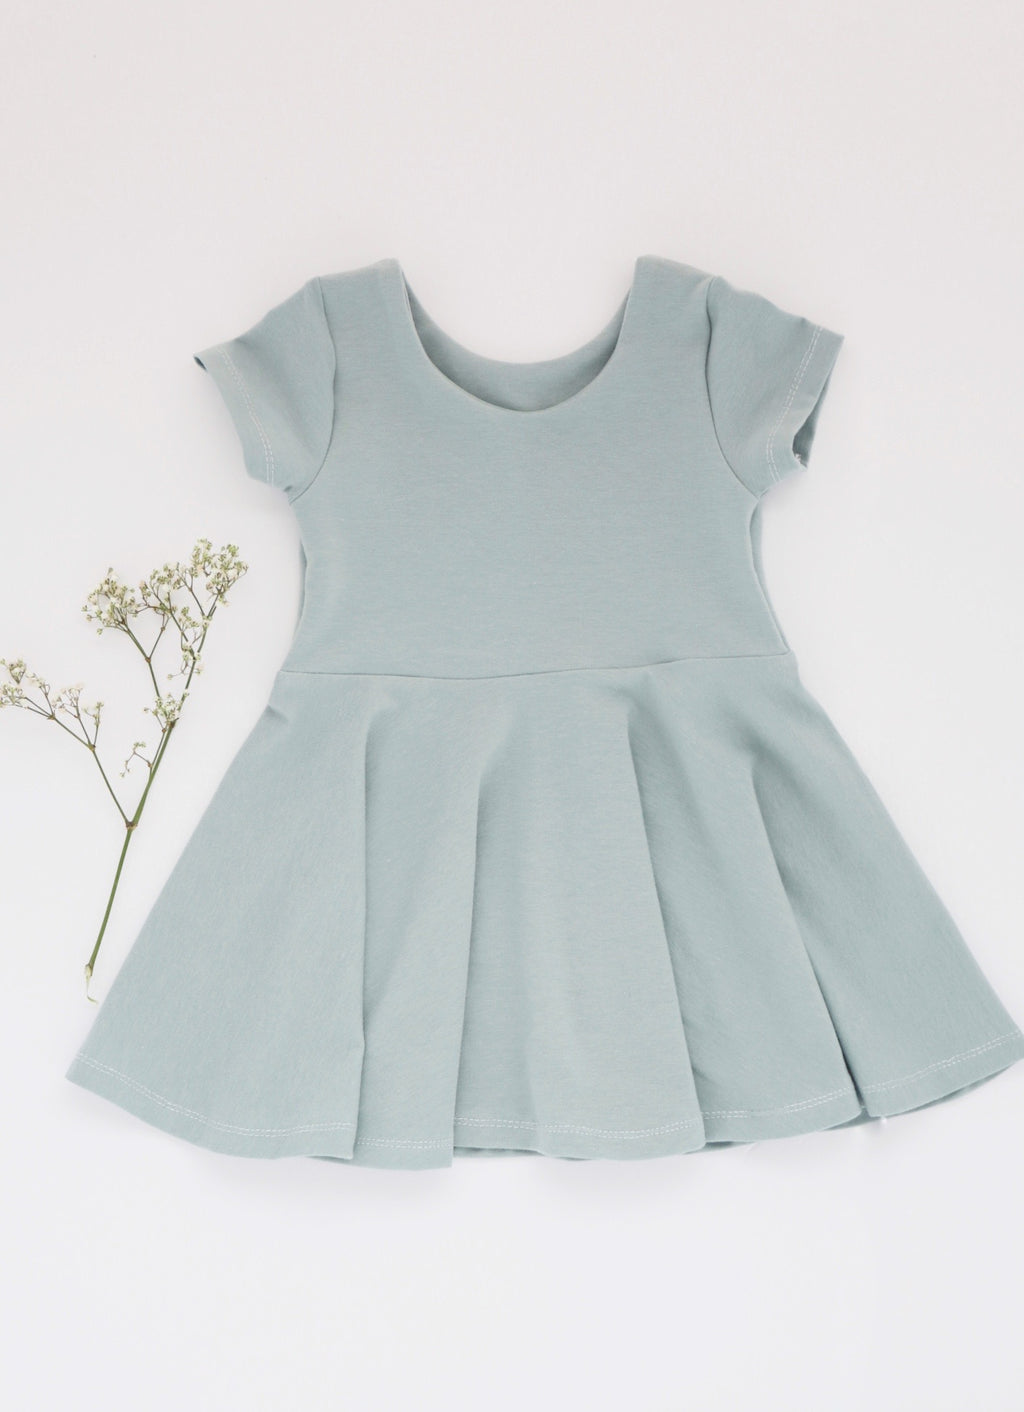 Seafoam Peplum Dress